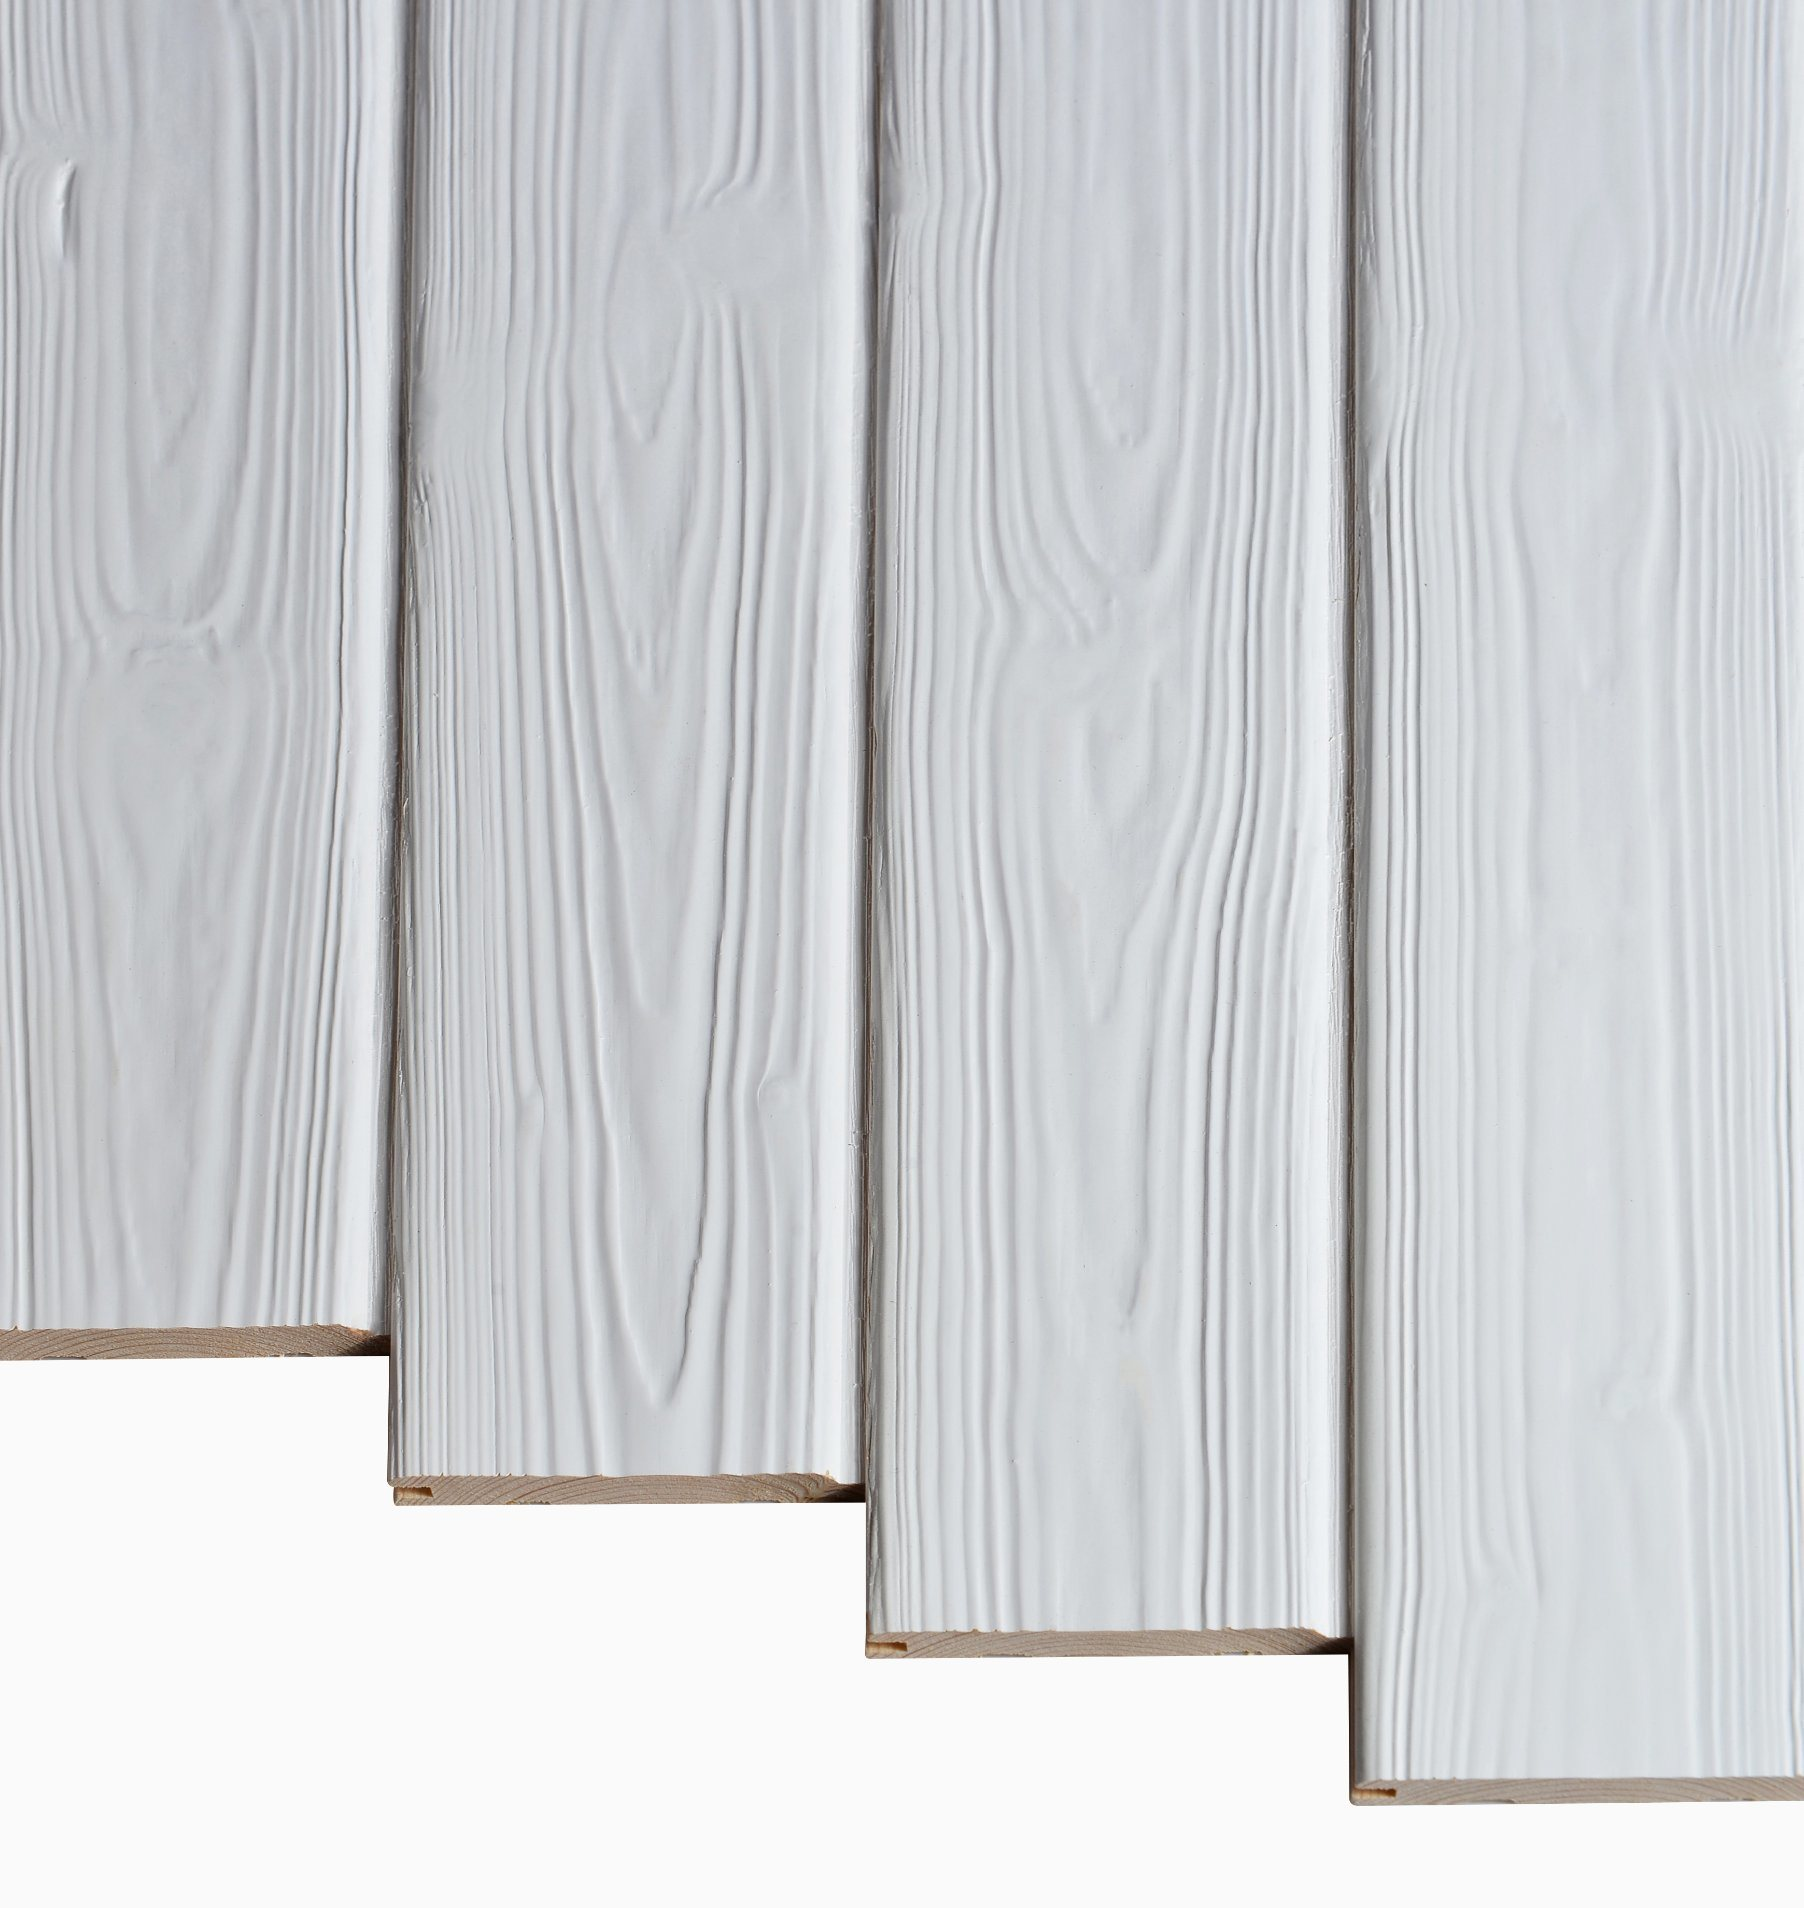 China Solid Wood Wall Panel For Ceiling And Wall For Prefab Wooden House Interior Decoration China Soild Wood Panel Outdoor Wood Panel